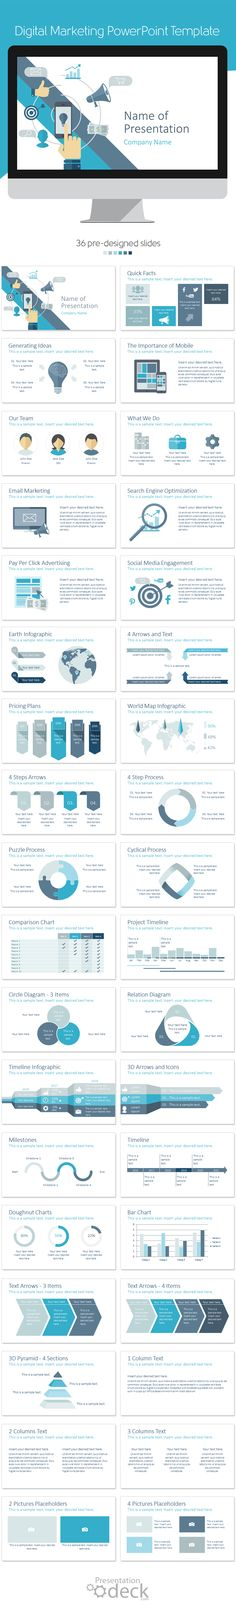 Digital marketing PowerPoint template in flat design style including 36 pre-designed slides. This theme is perfect for interactive agency, presentations on digital strategies, SEO, SMO, etc. #powerpoint #presentations